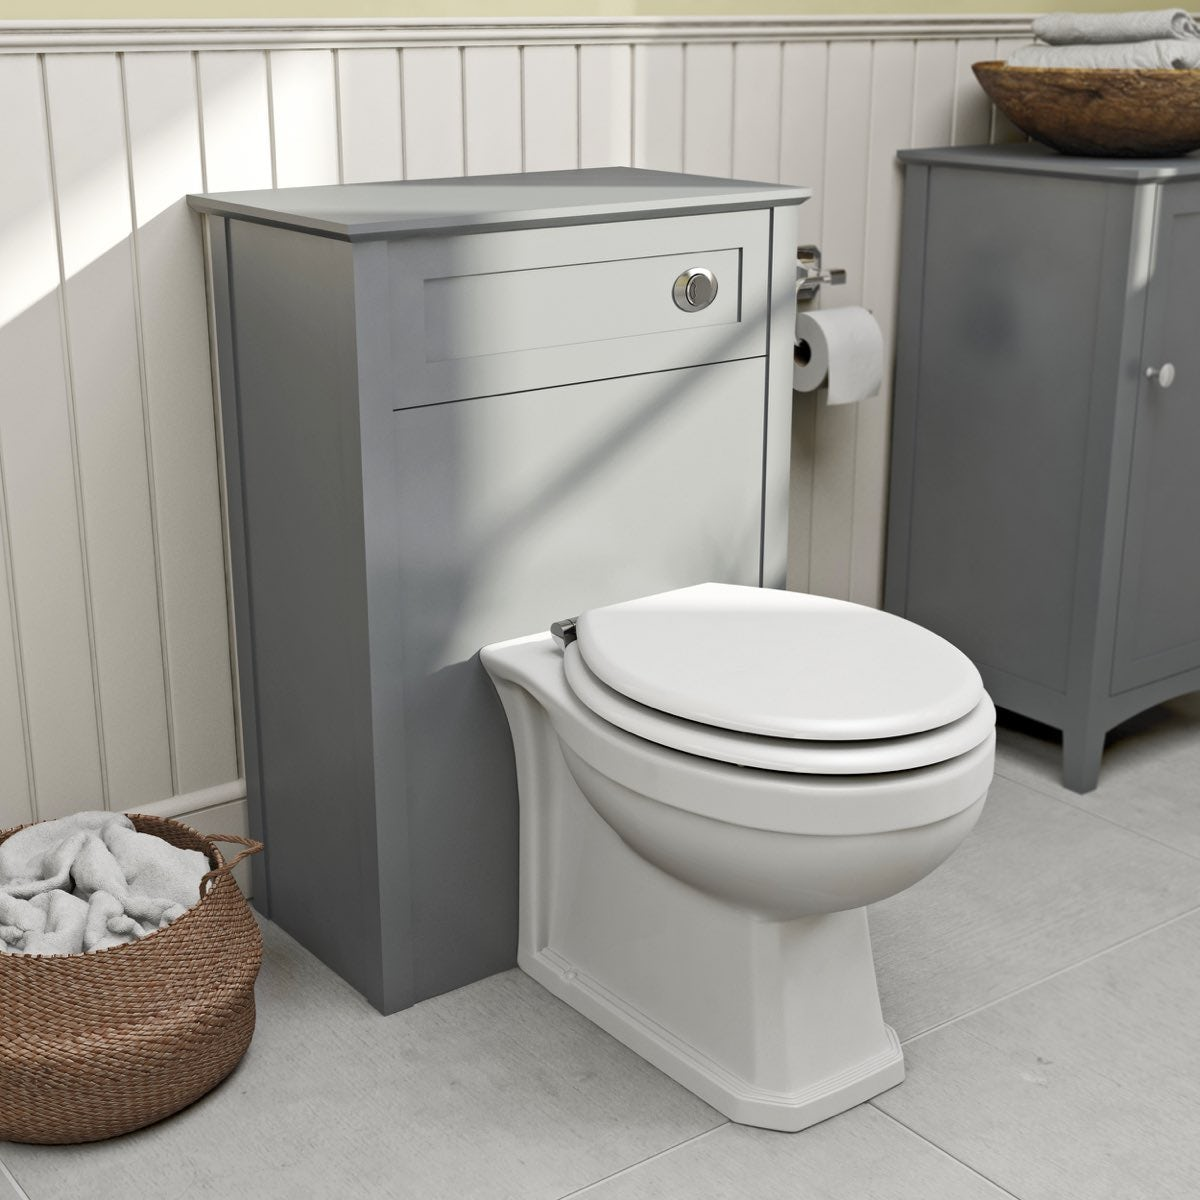 The Bath Co. Camberley grey back to wall toilet unit and traditional back to wall toilet